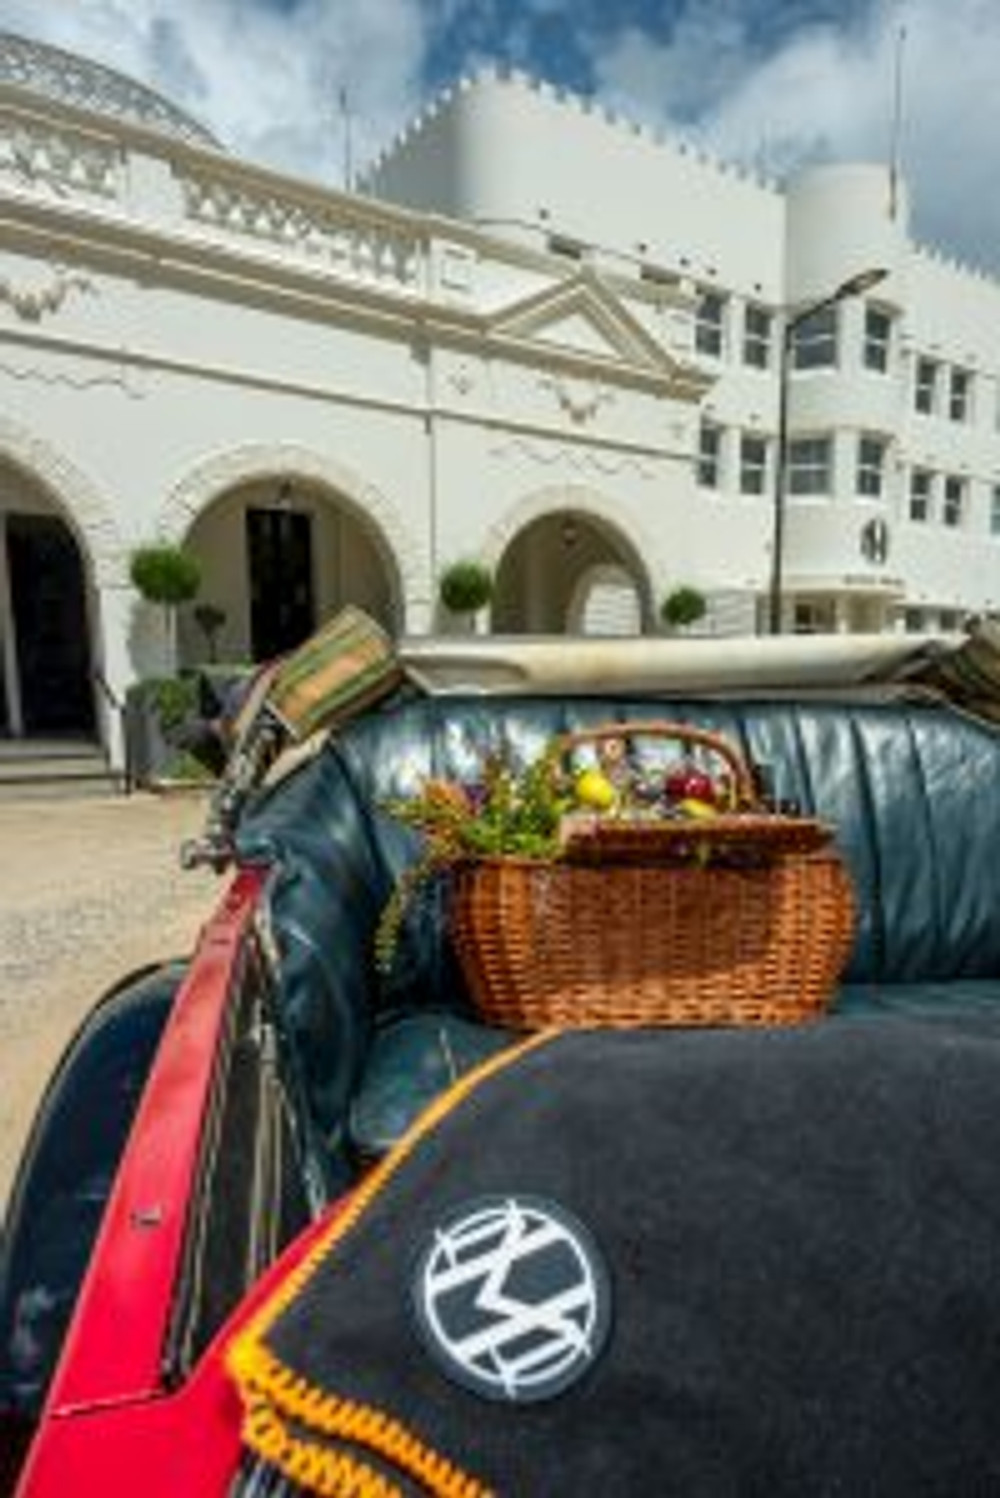 Take a tour to the Hydro Majestic Hotel with Blue Mountains Vintage Cadillacs